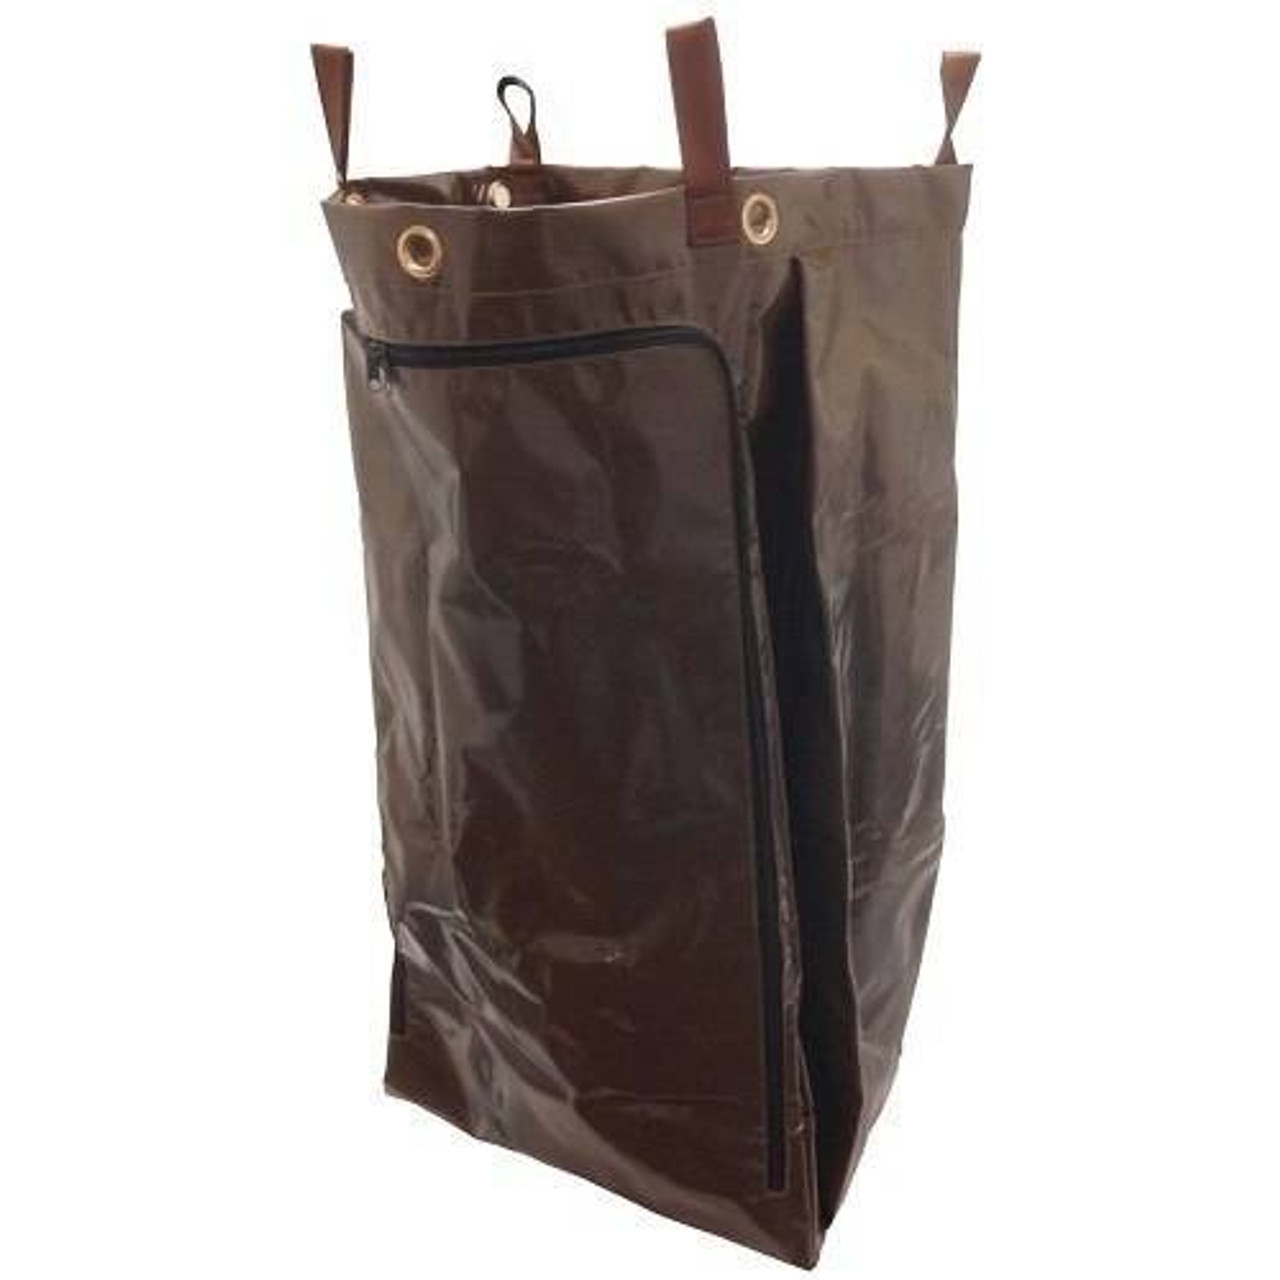 HOSPITALITY 1 SOURCE HOSPITALITY 1 SOURCE or X DUTY PVC LAUNDRY BAG or ZIPPER or LARGE or 18X30X12 or BROWN or 5 PER CASE